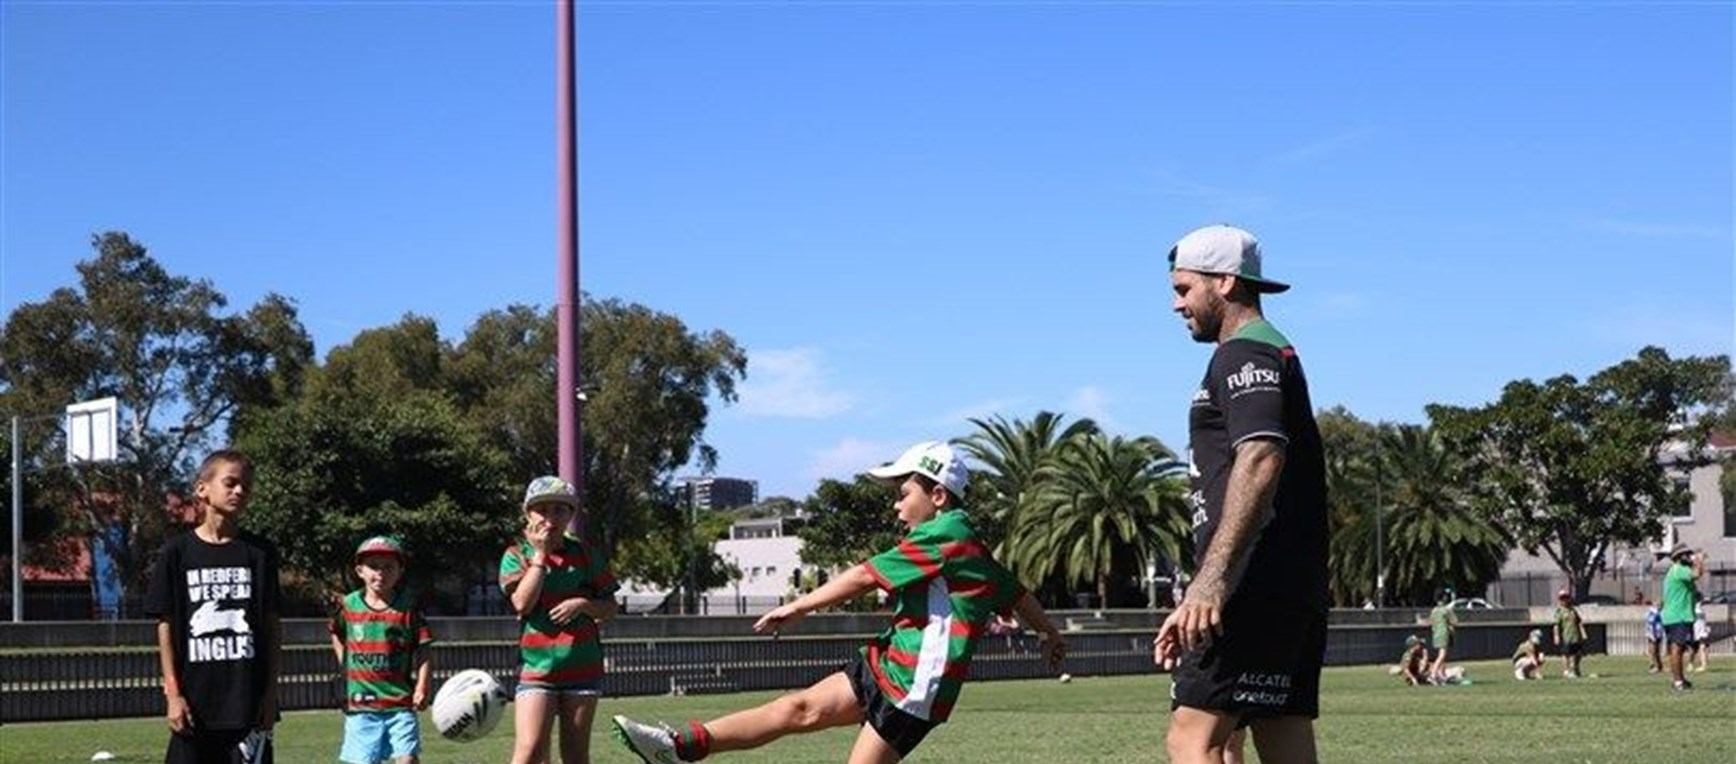 GALLERY: Redfern Holiday Footy & Dance Clinic